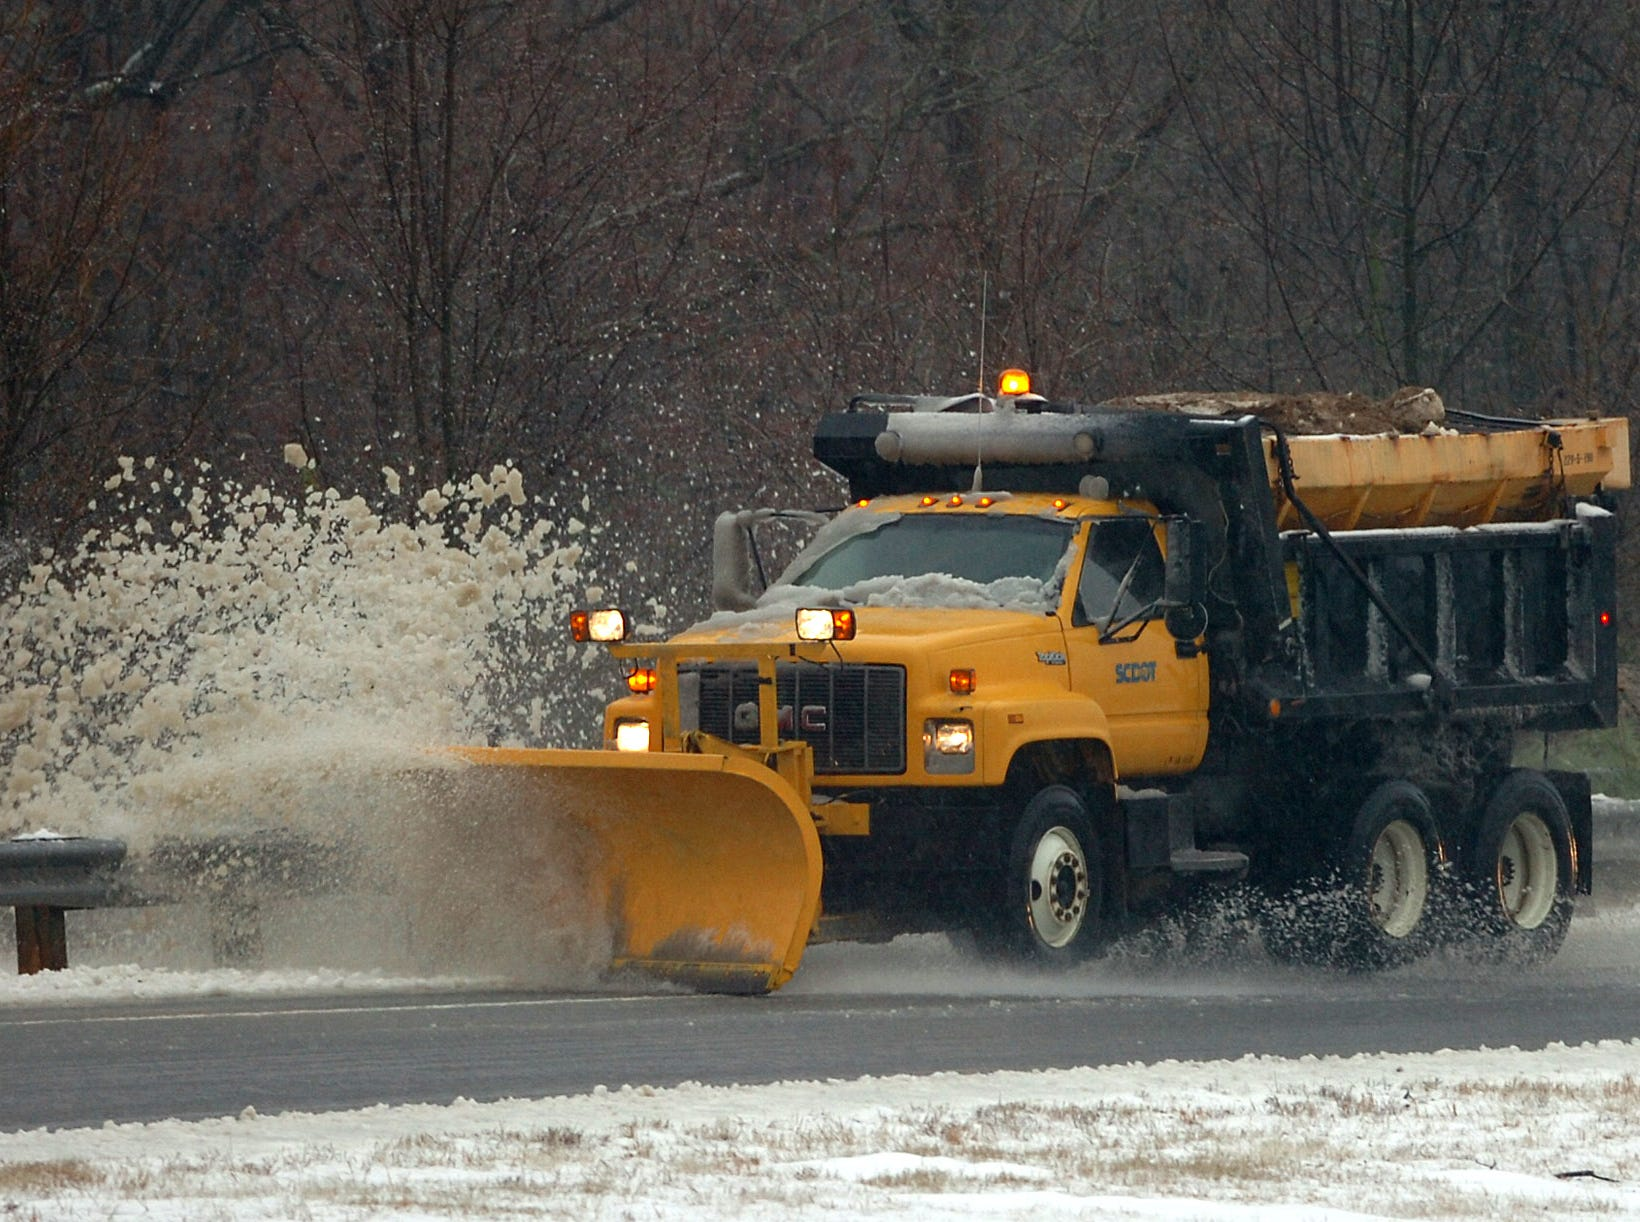 A snow plow clears the exit ramp to Hwy 153 off I-85 in Anderson County Thursday, February 1, 2007.